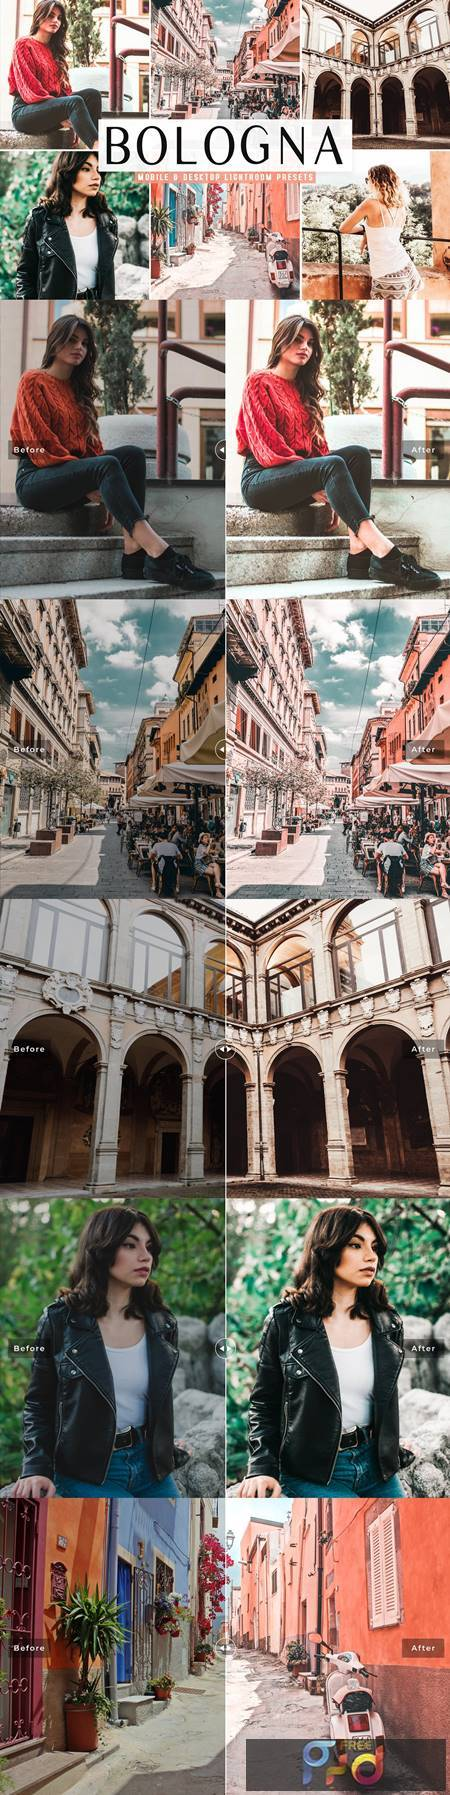 Bologna Lightroom Presets Pack 4971177 1